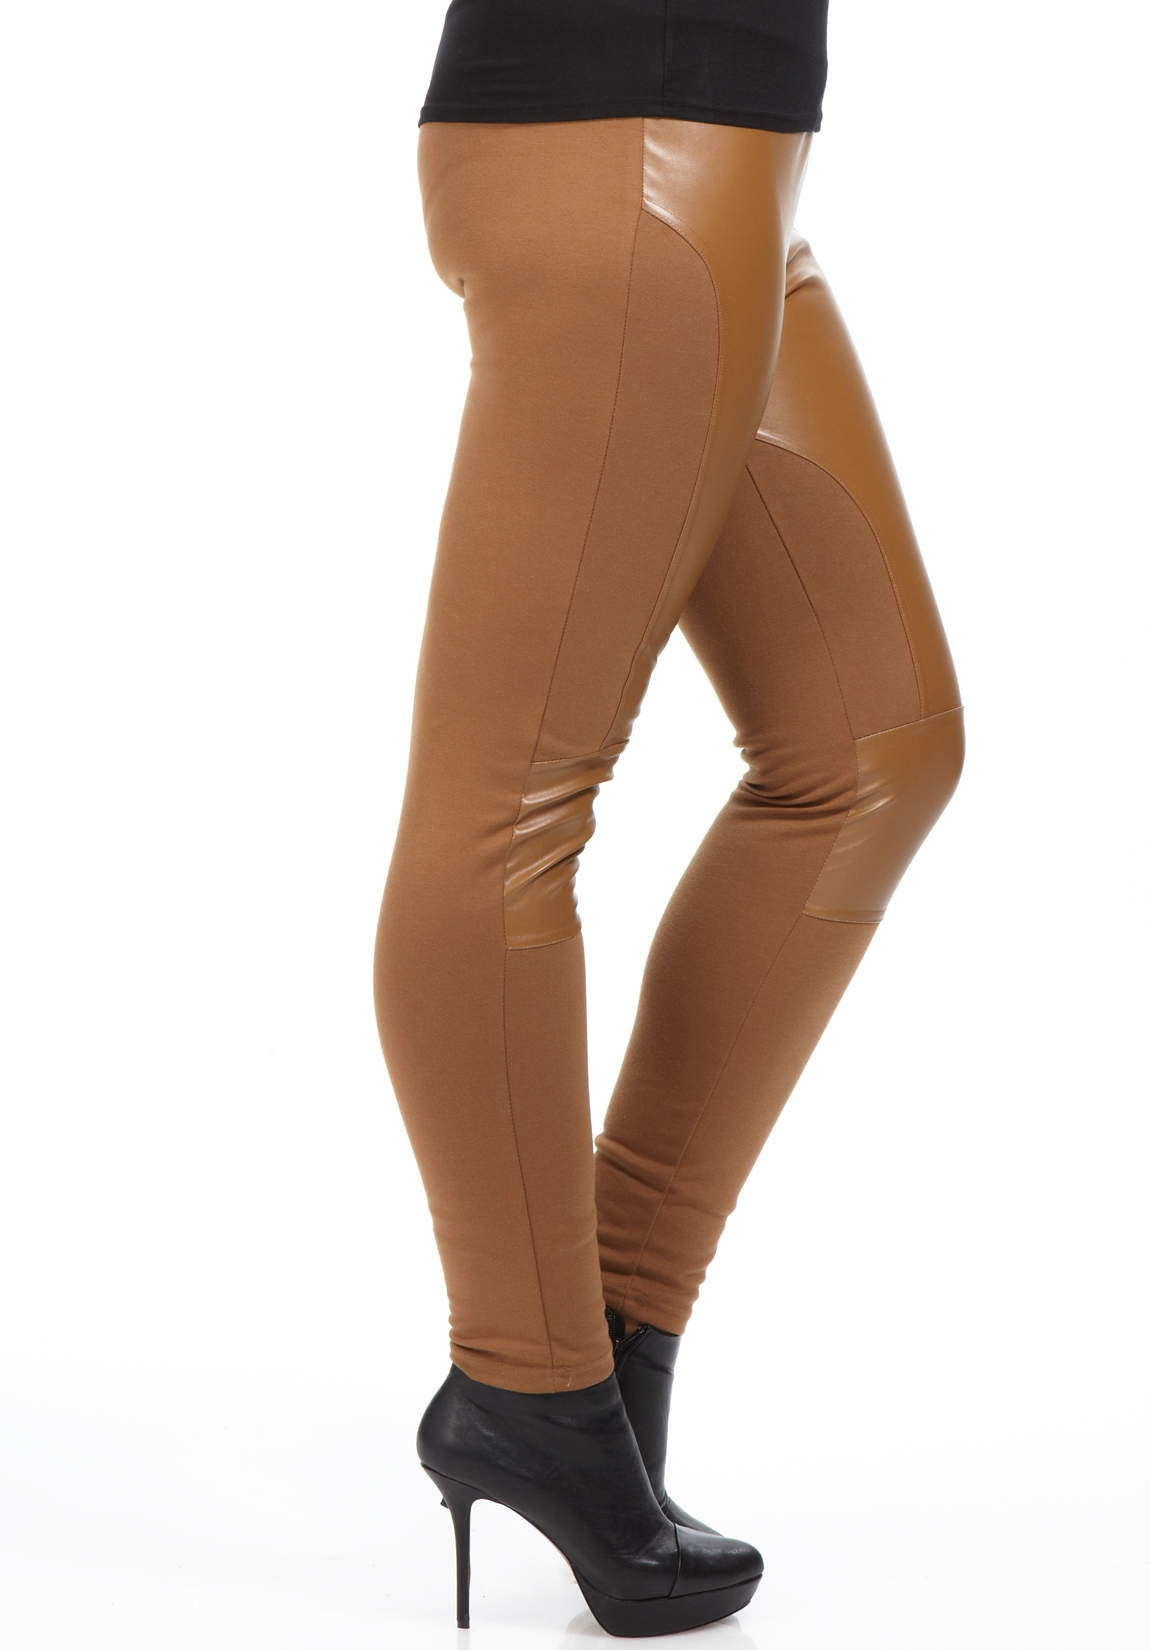 Leggings gratuits